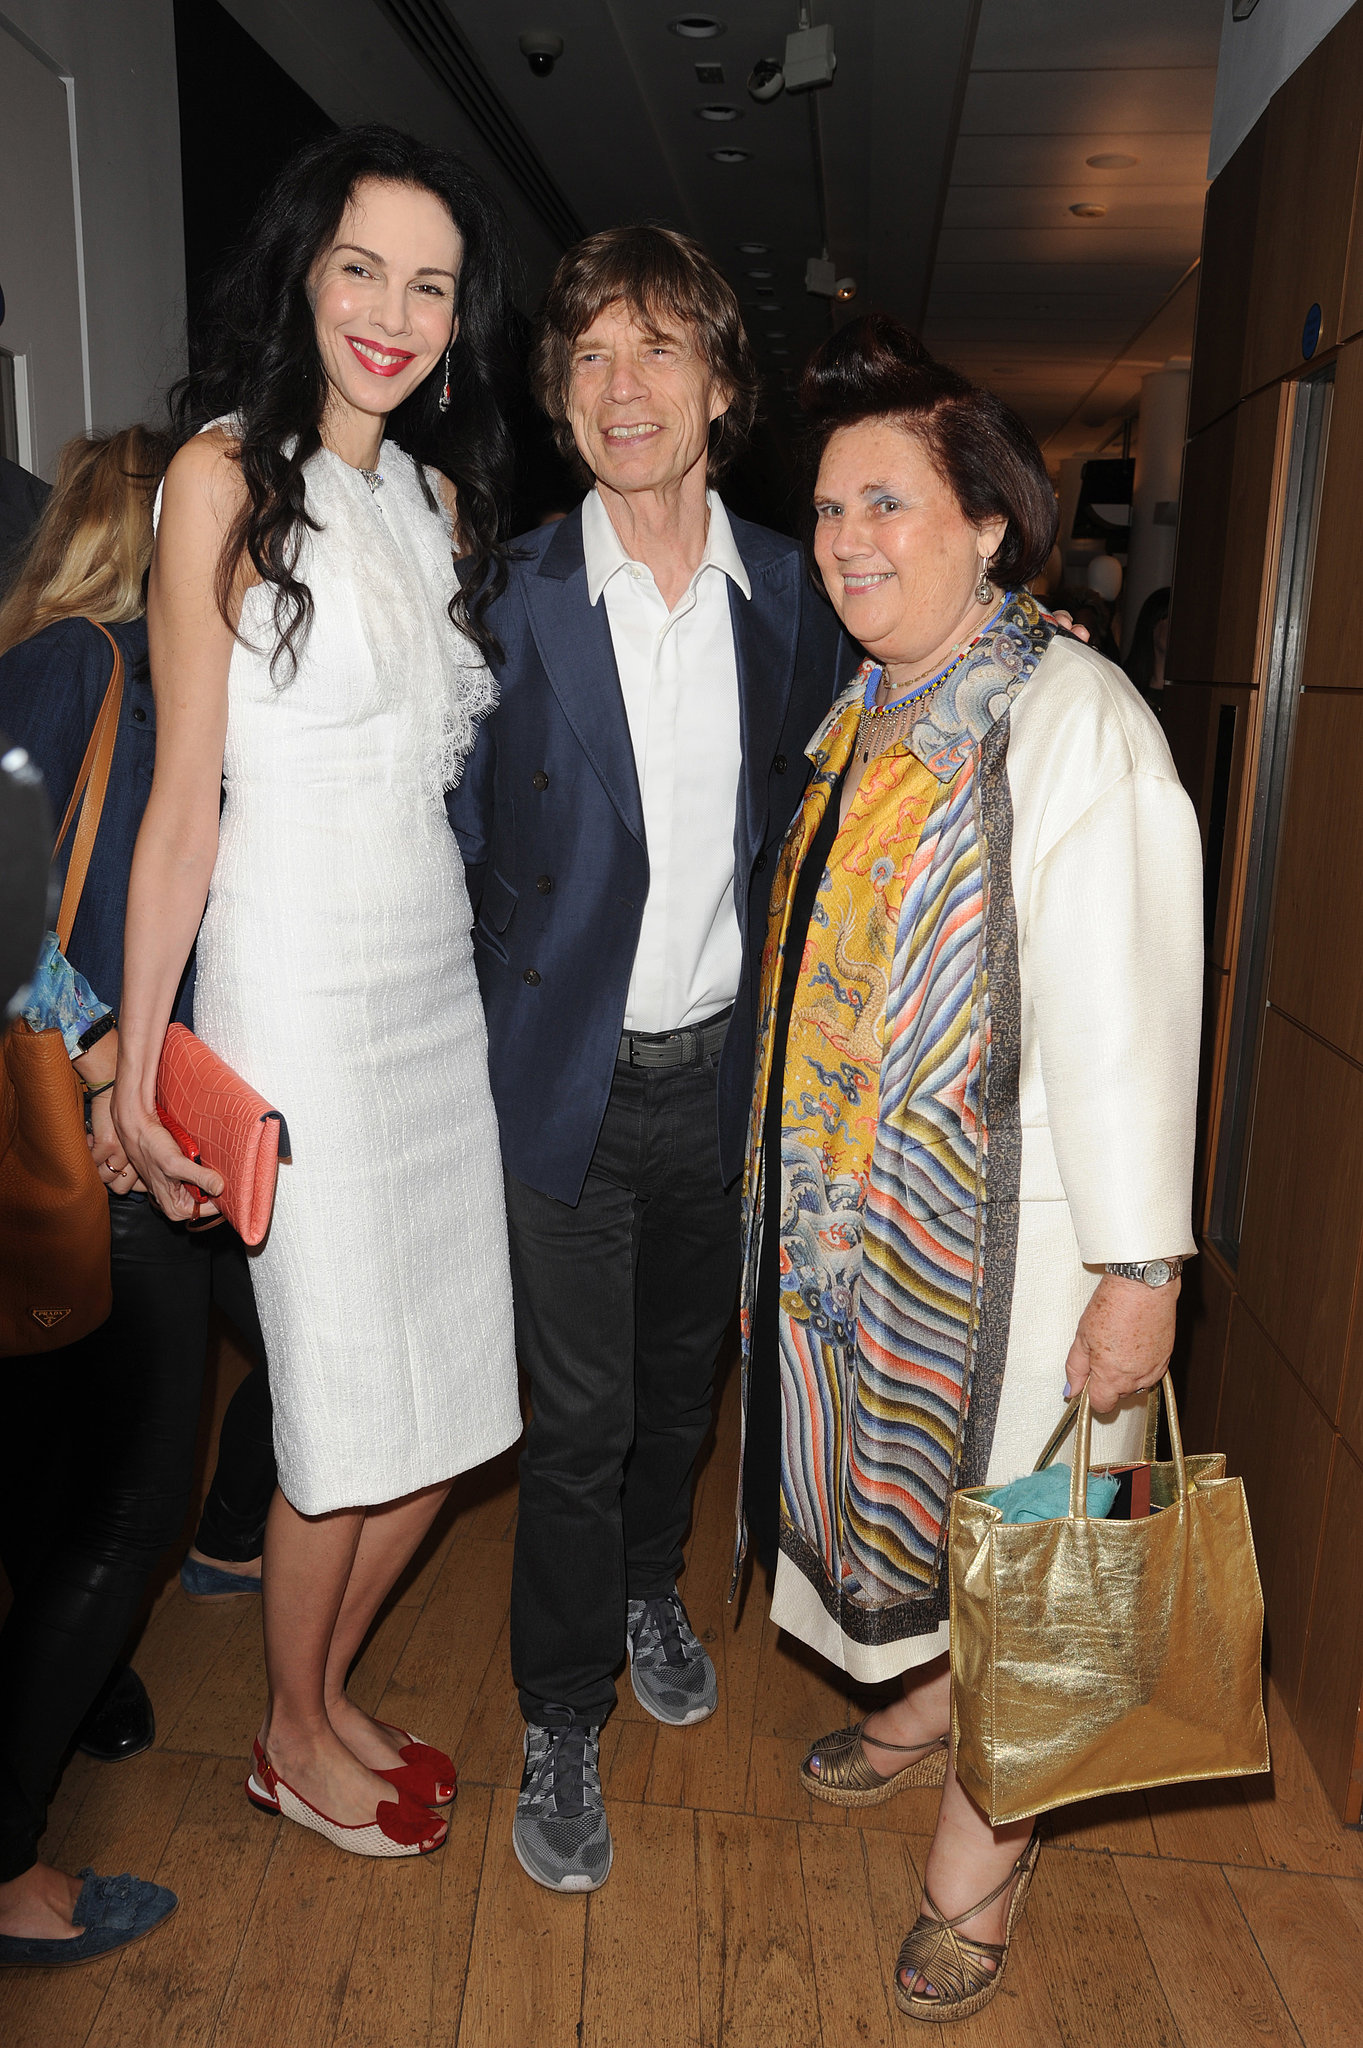 L'Wren Scott and Mick Jagger joined Suzy Menkes for the opening reception of her Christie's collection in Lond